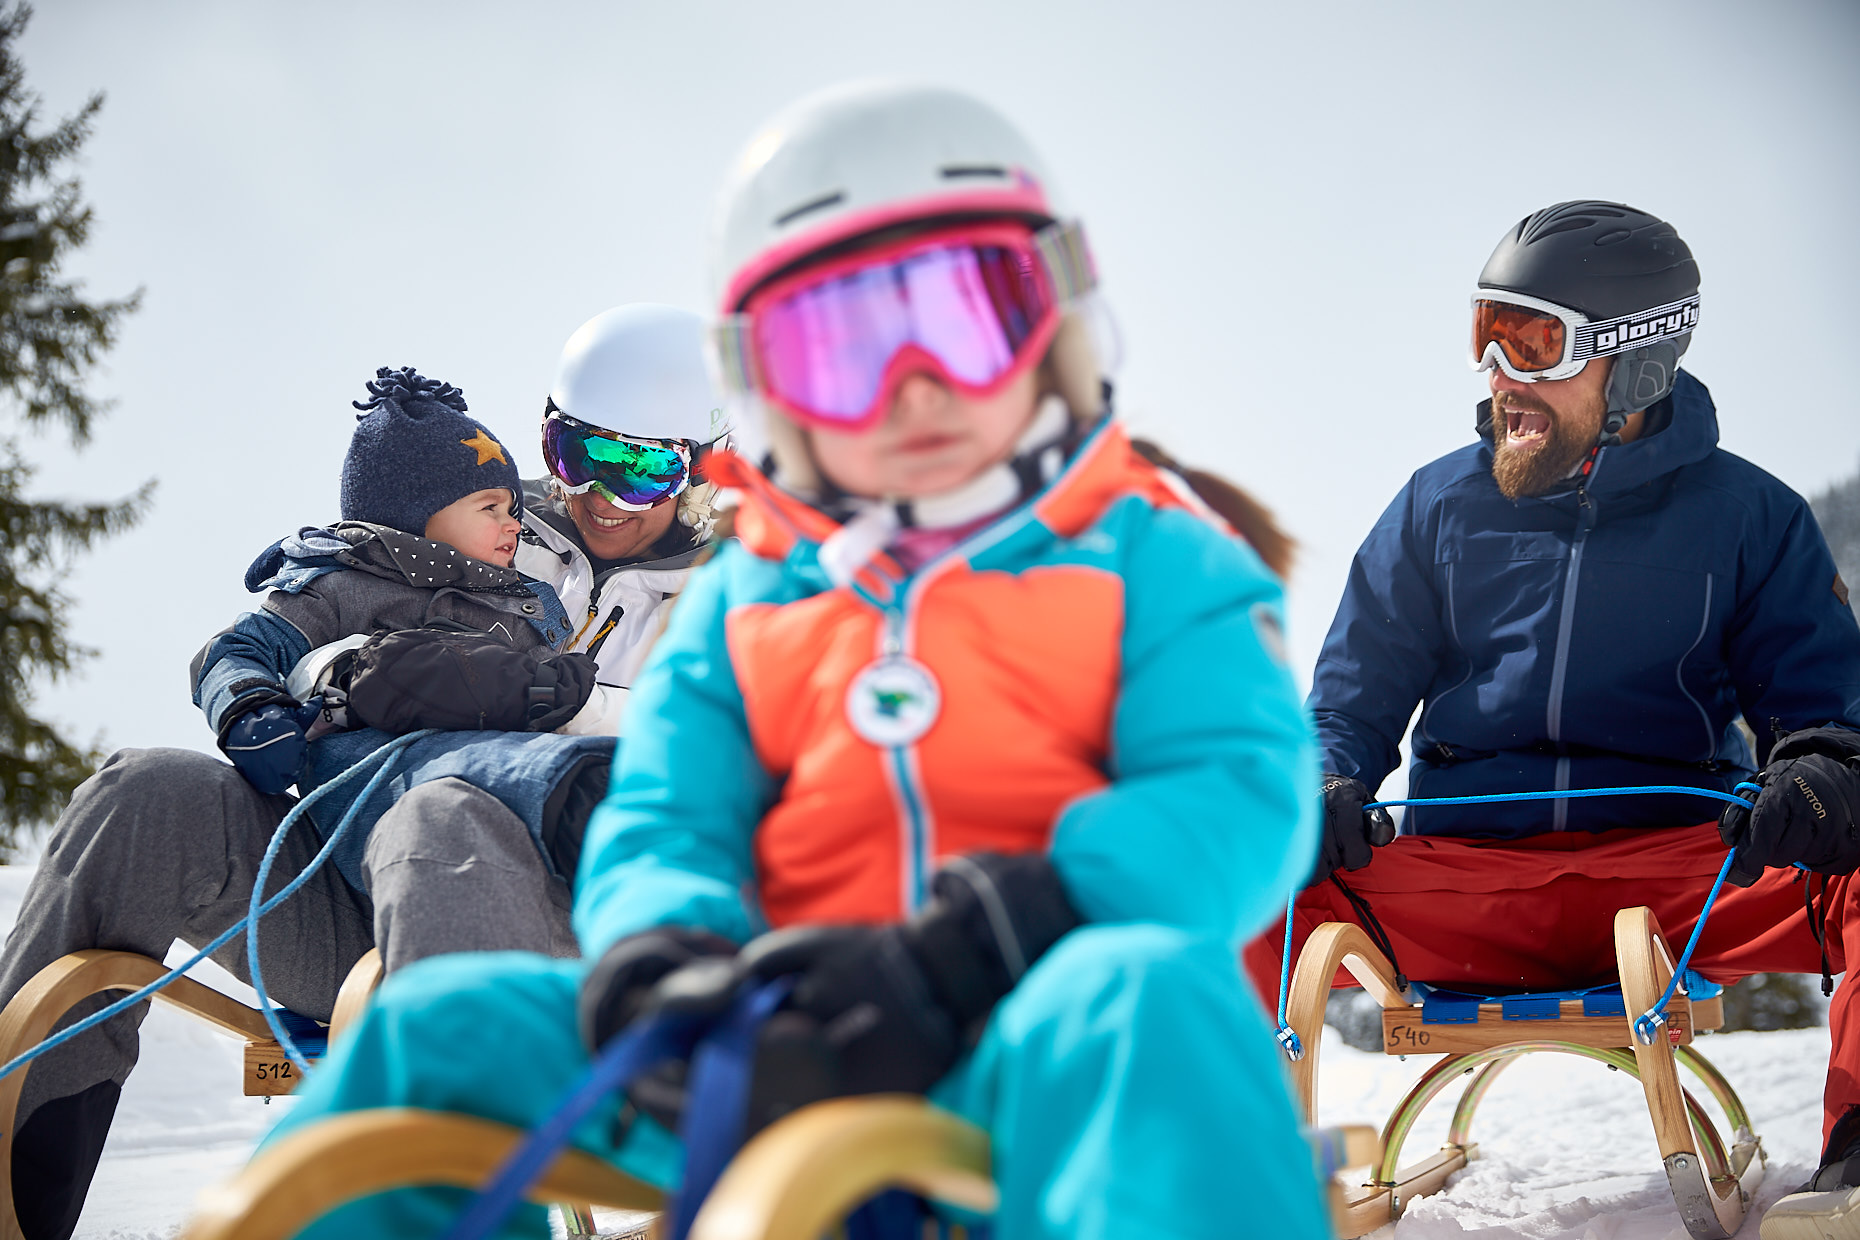 Winter Family activities | Stefan Kuerzi Tourism Photography